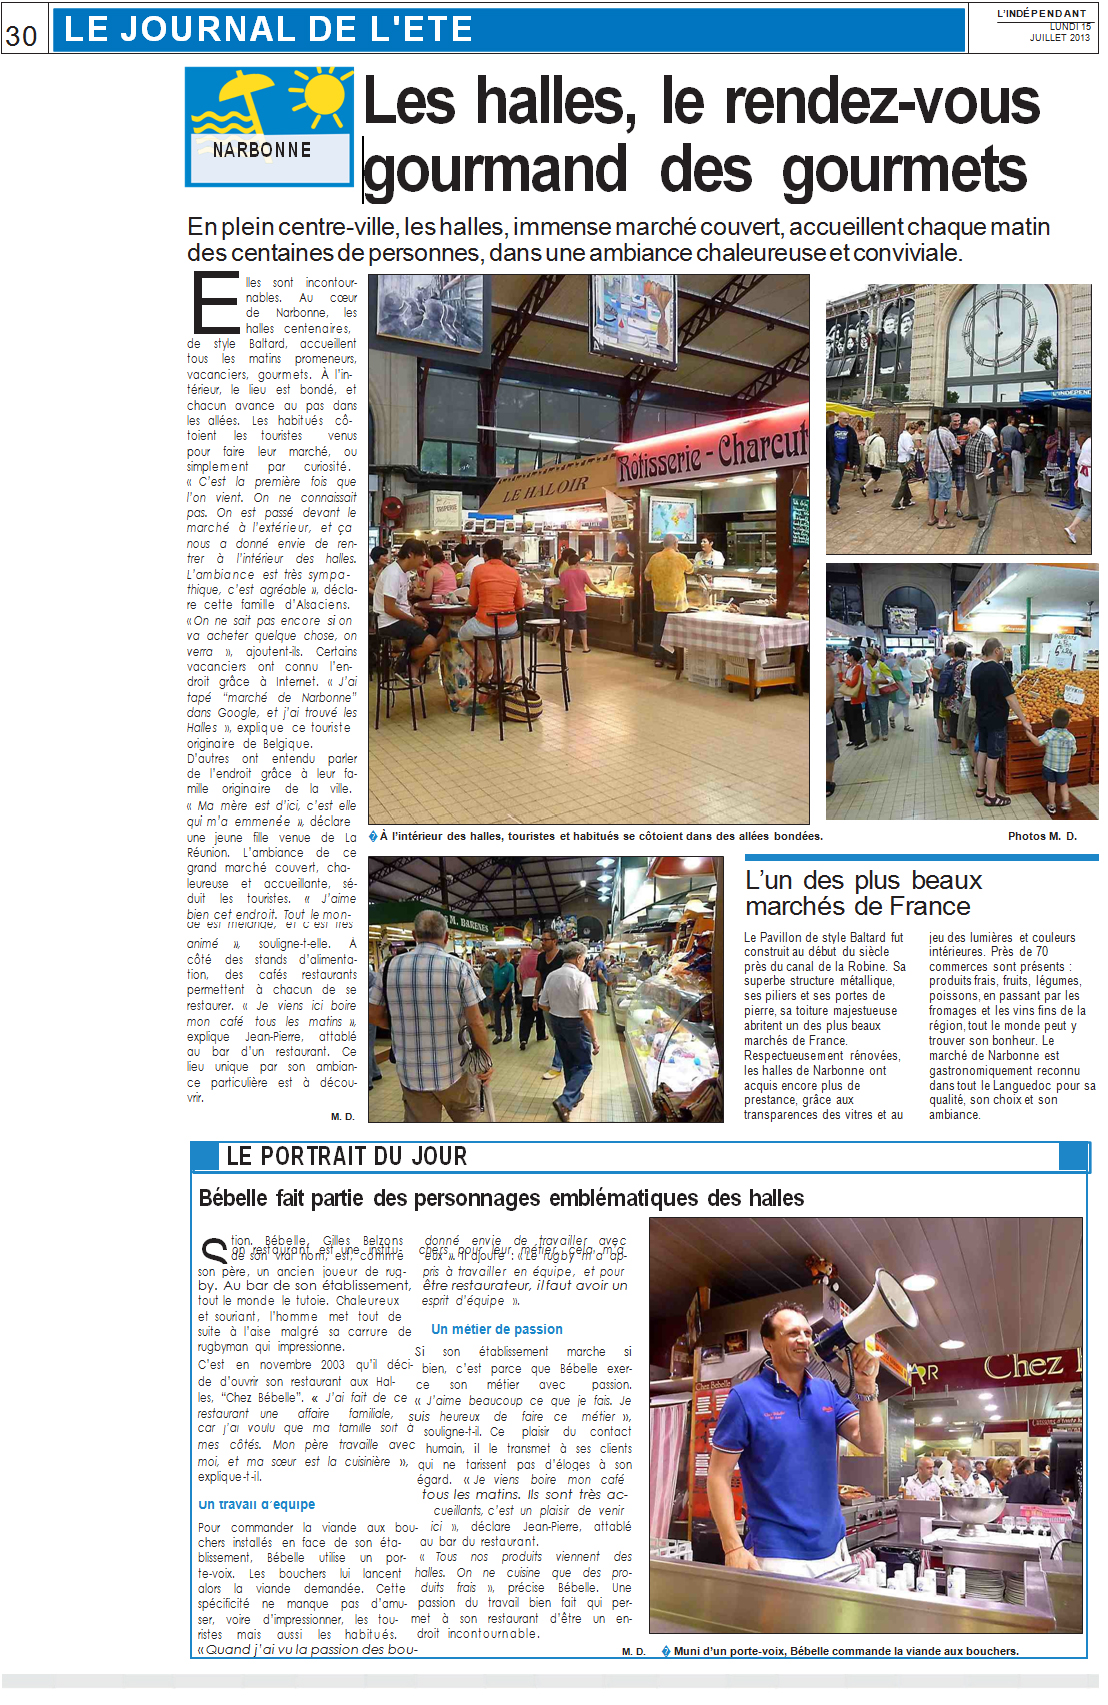 supplement_ete_gourmands_halles_de_narbonne_independant-15-04-2013